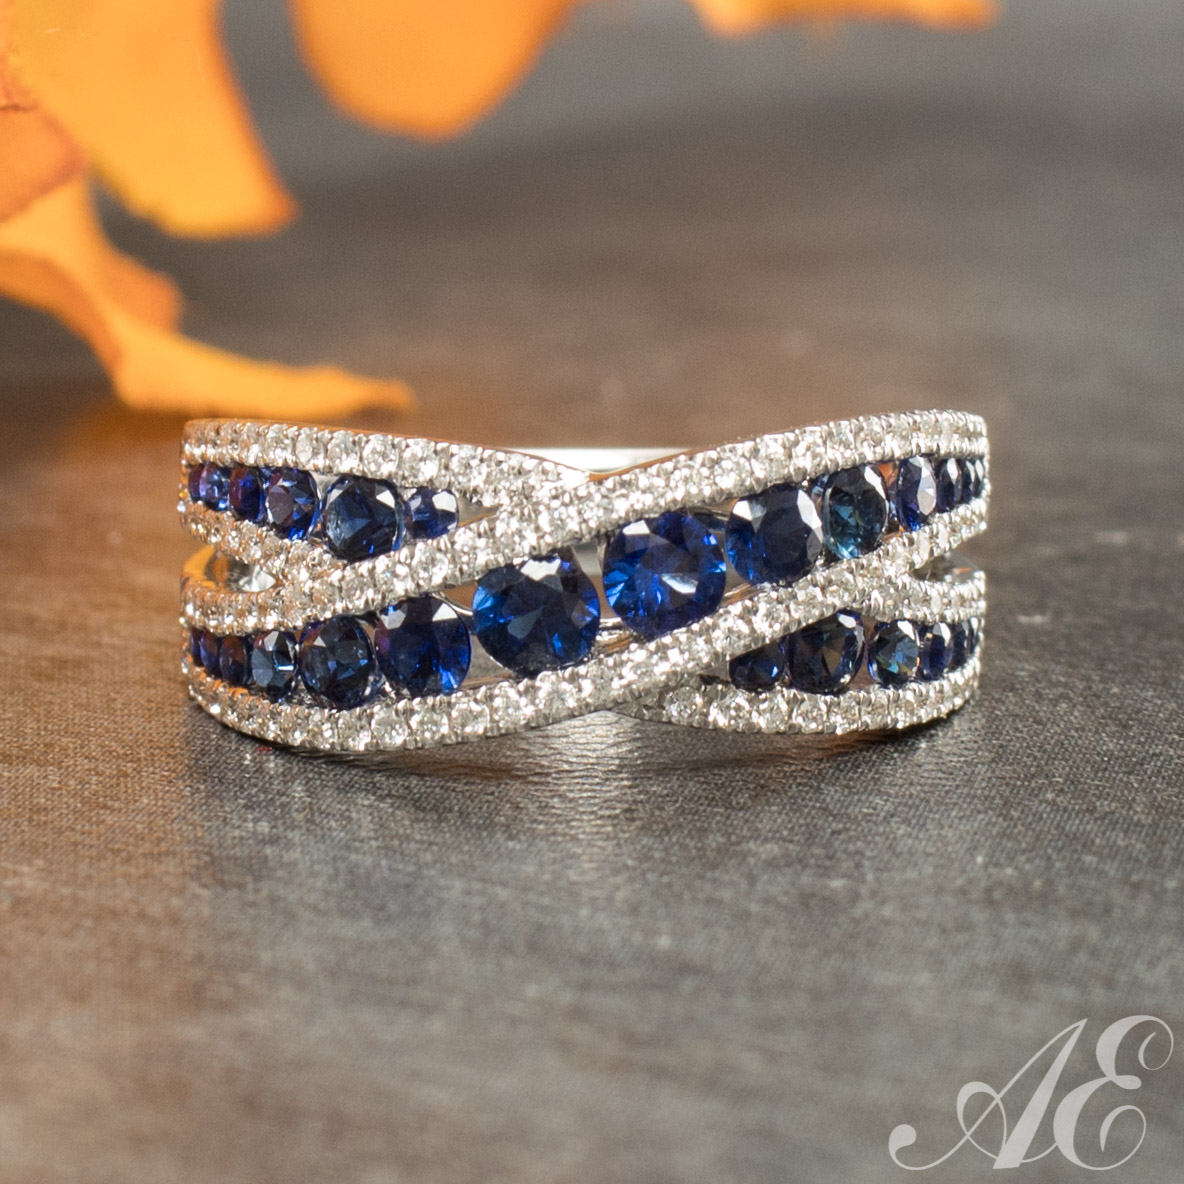 Blue Sapphire is the Birthstone for September